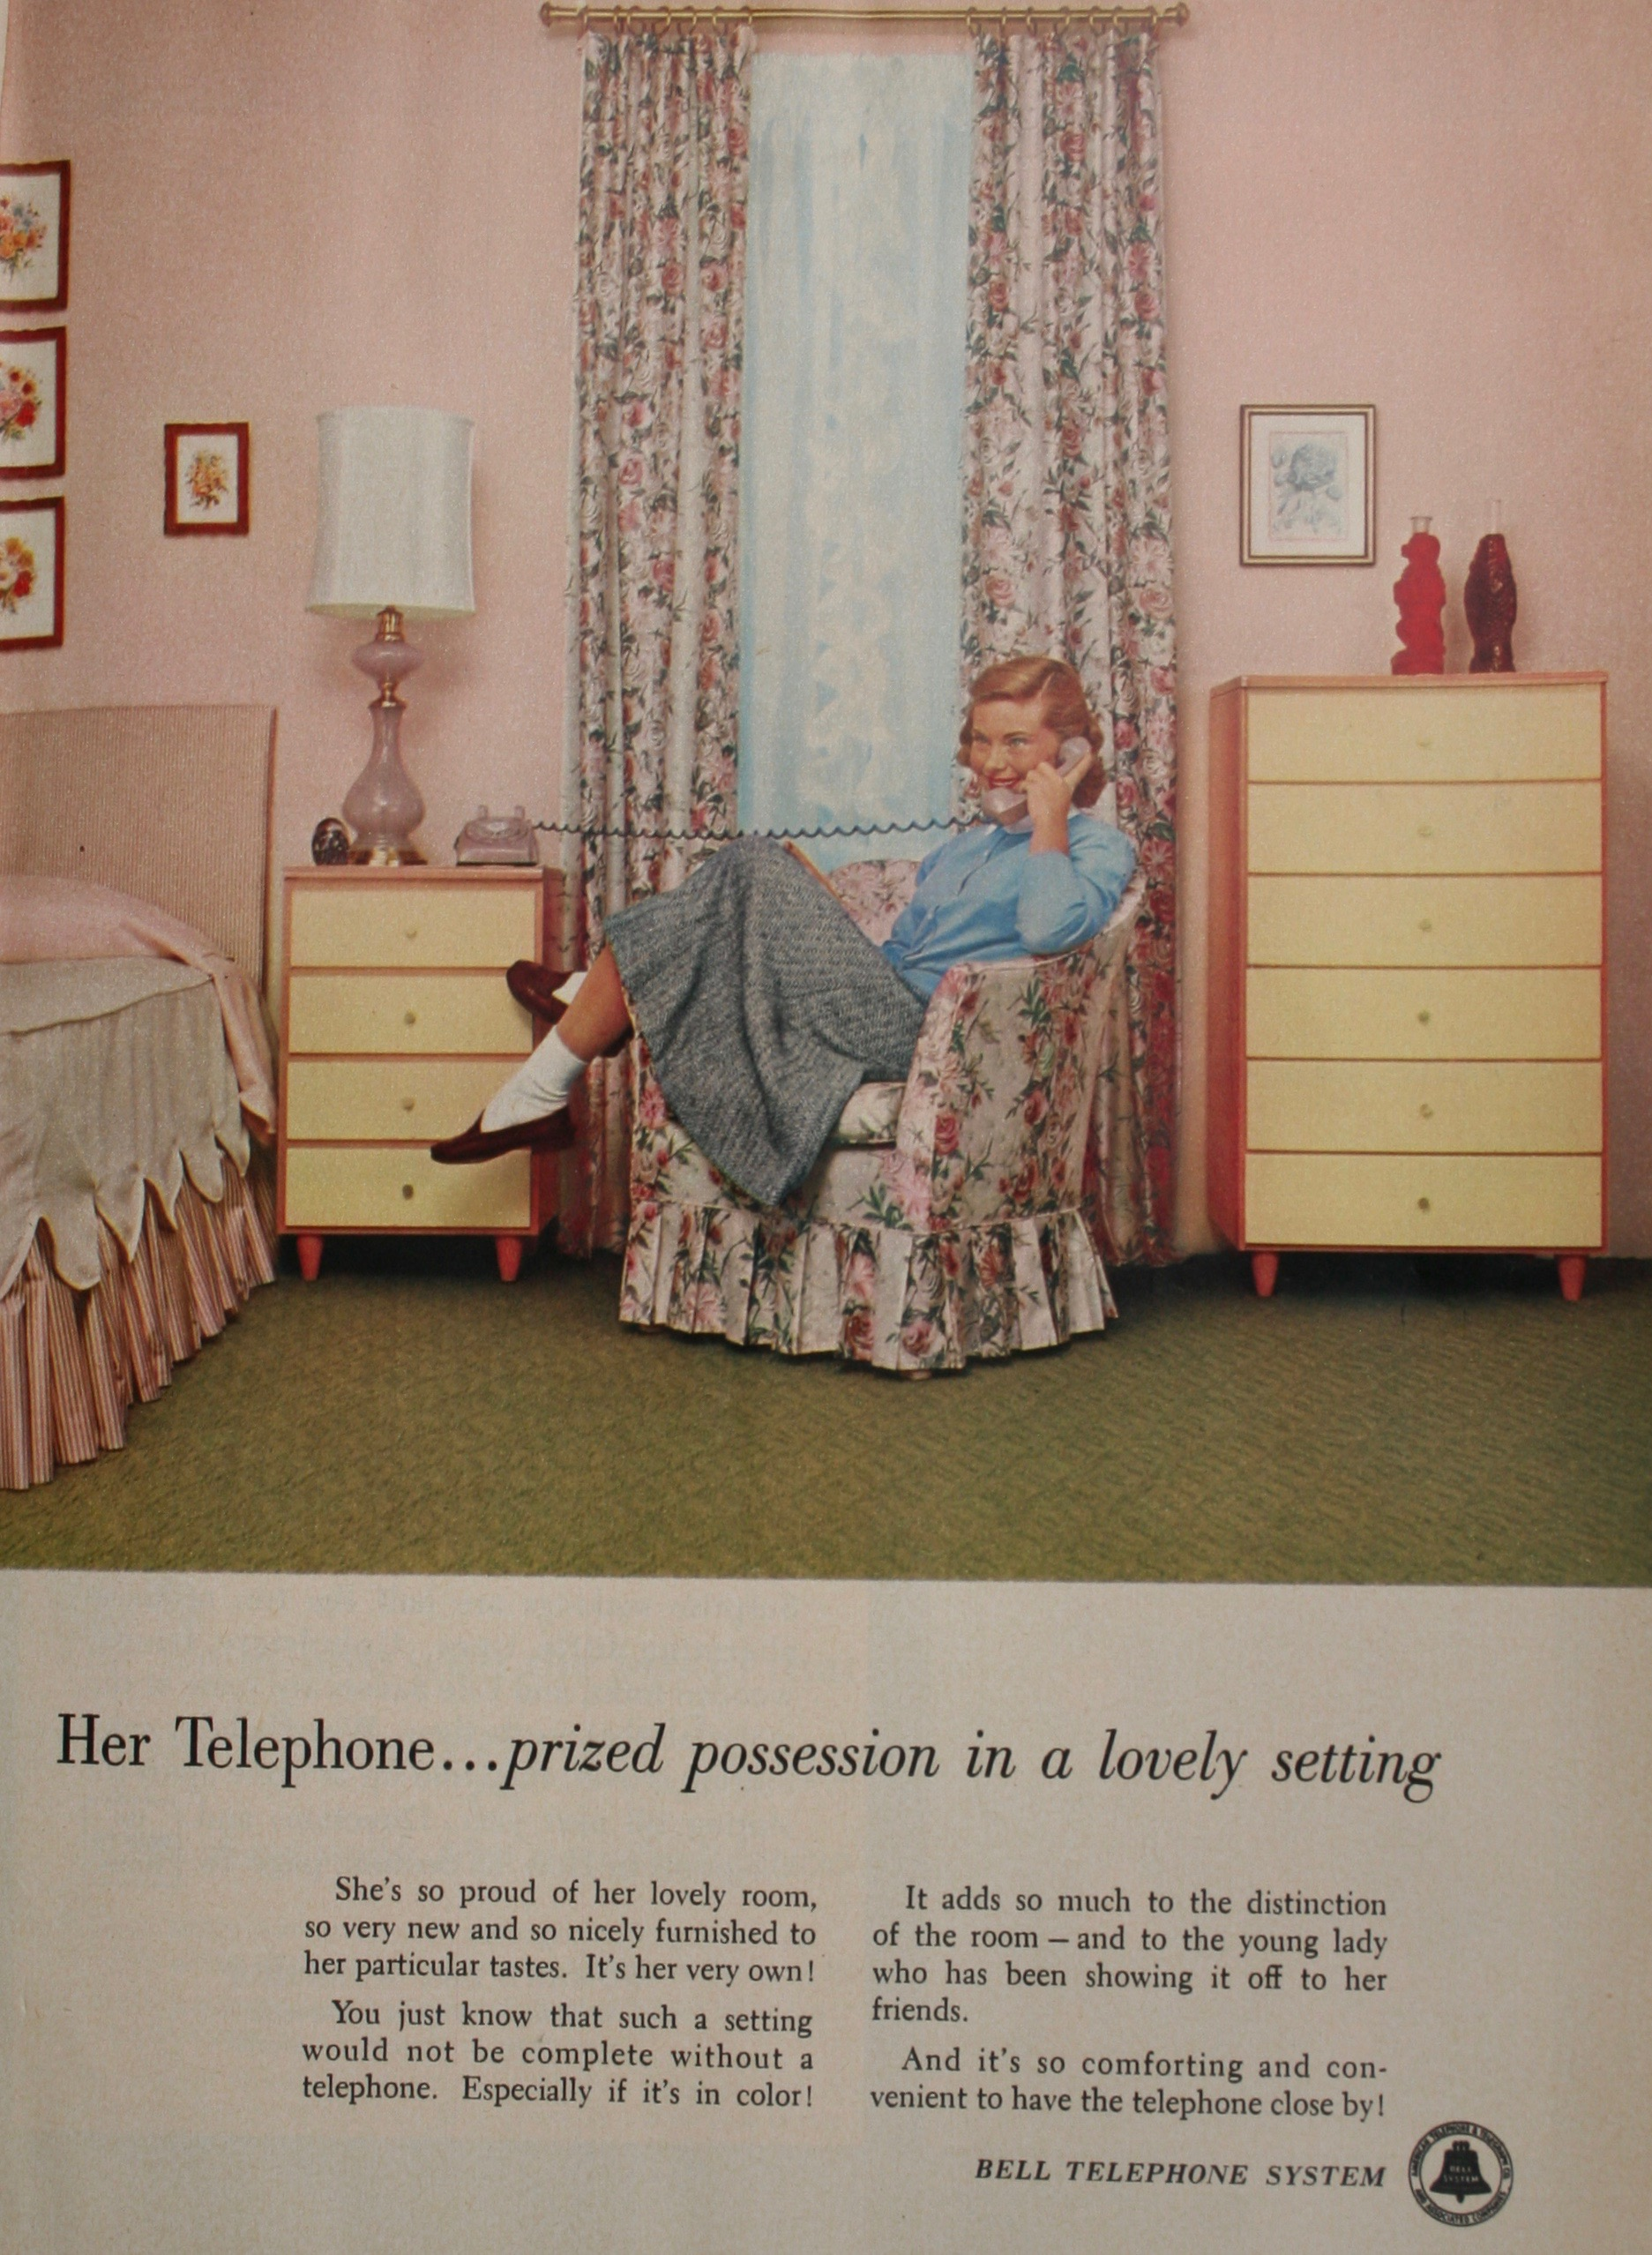 How about her own telephone to match her room's decor?